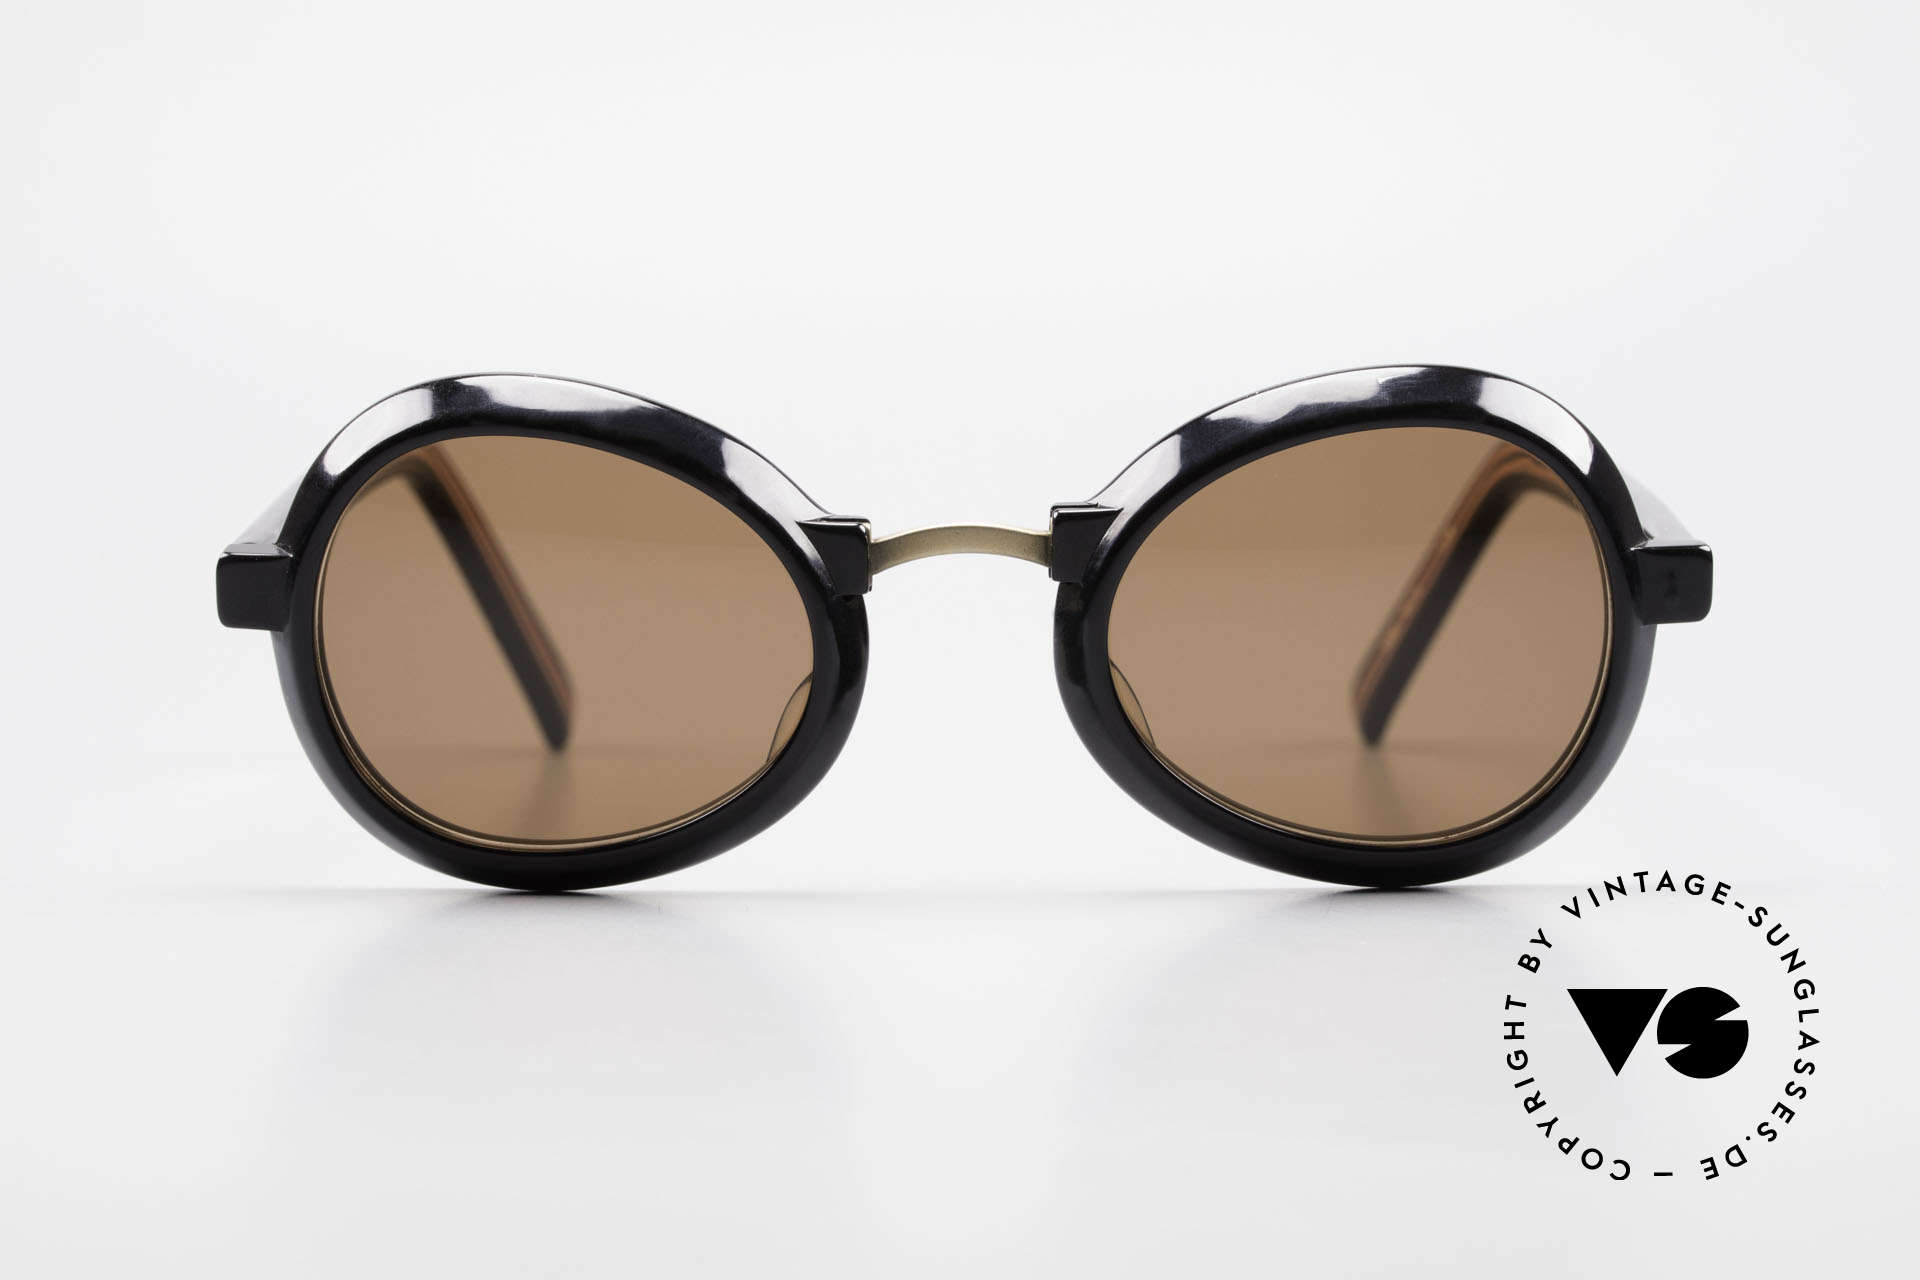 Jean Paul Gaultier 58-1274 Junior Gaultier Vintage Shades, unique combination of materials, design & colors, Made for Men and Women